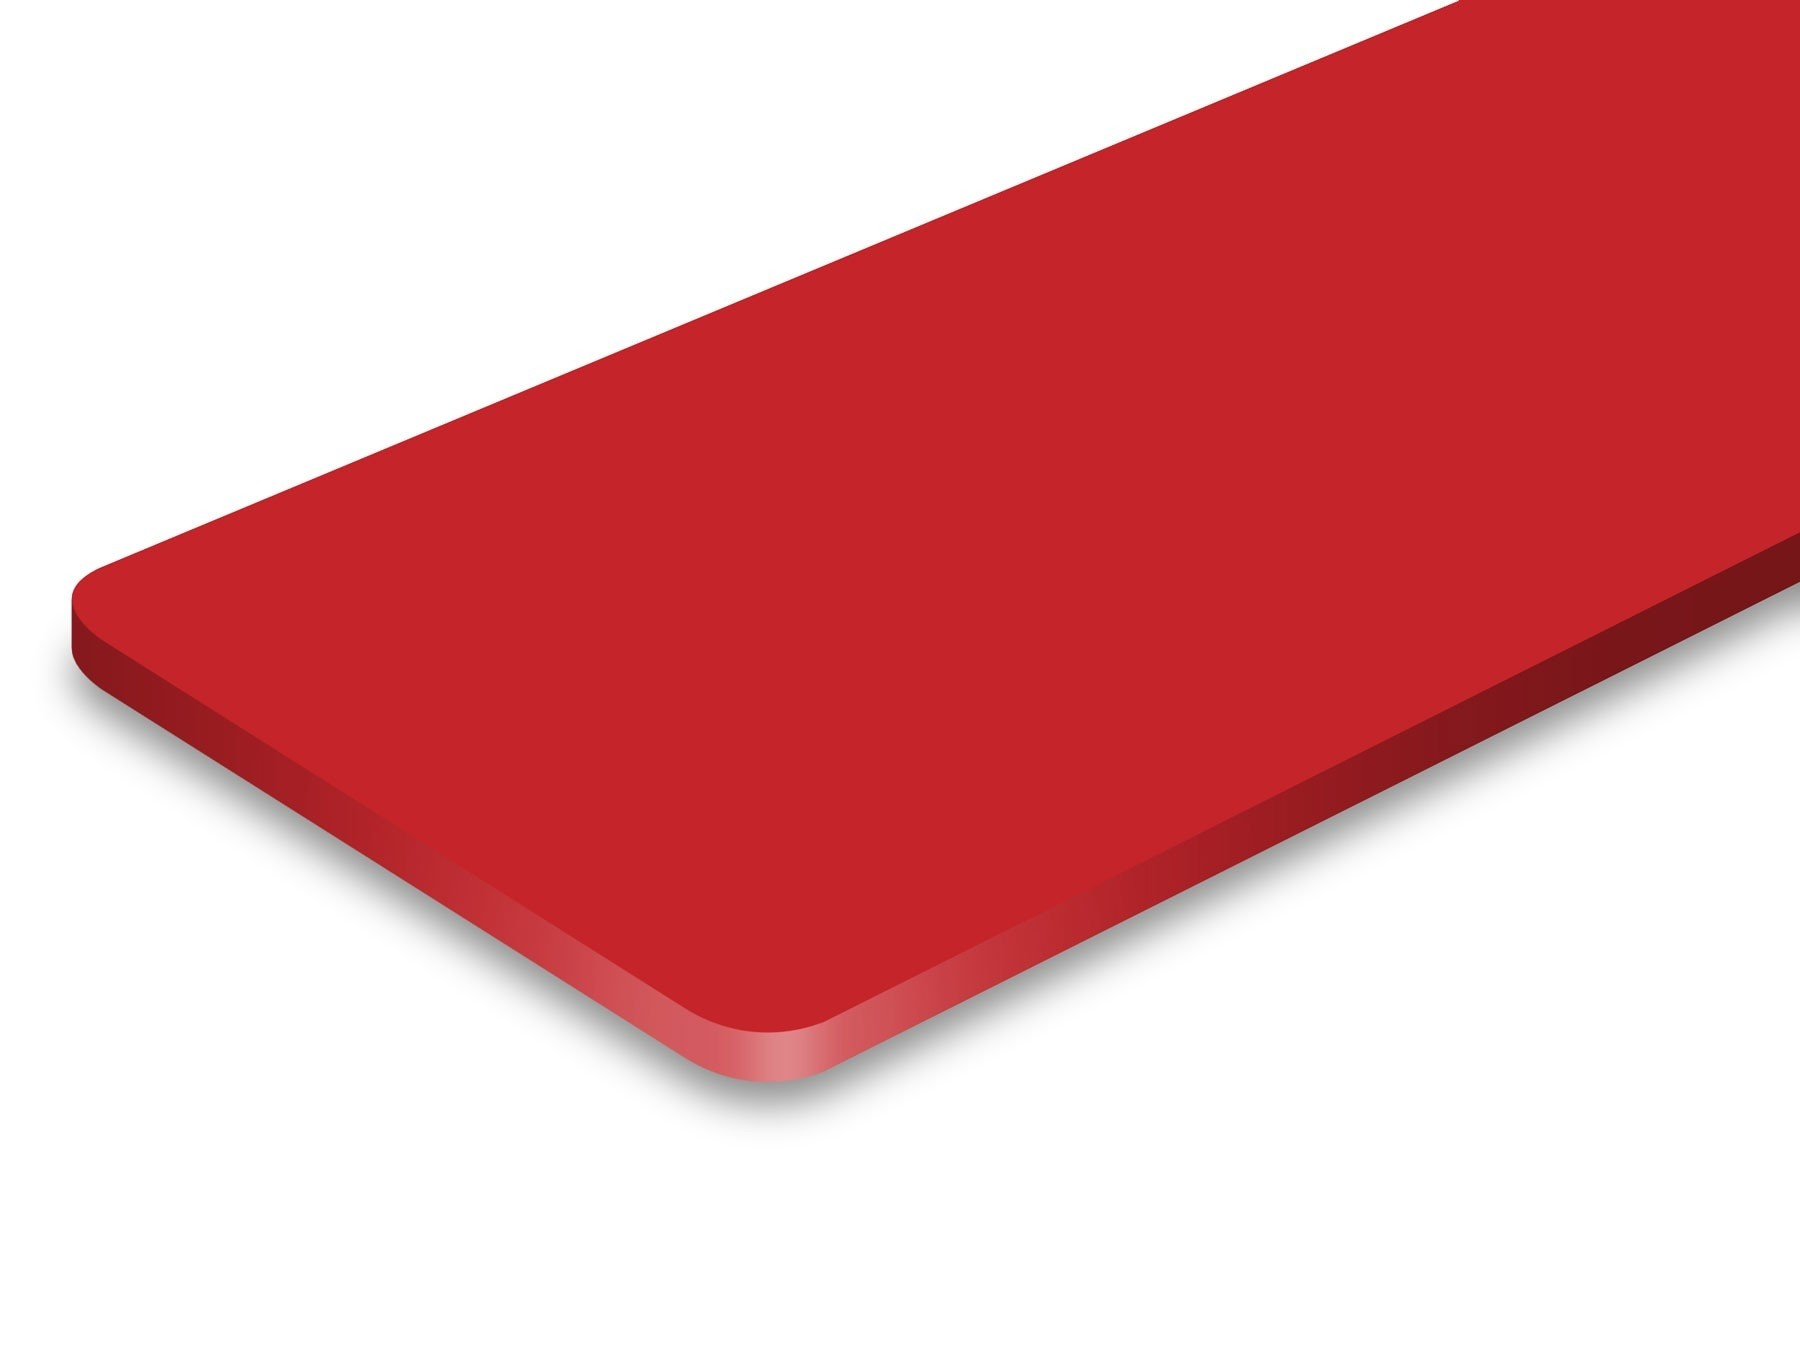 TroLase ADA Signage, Red, 1ply, 1.6 mm